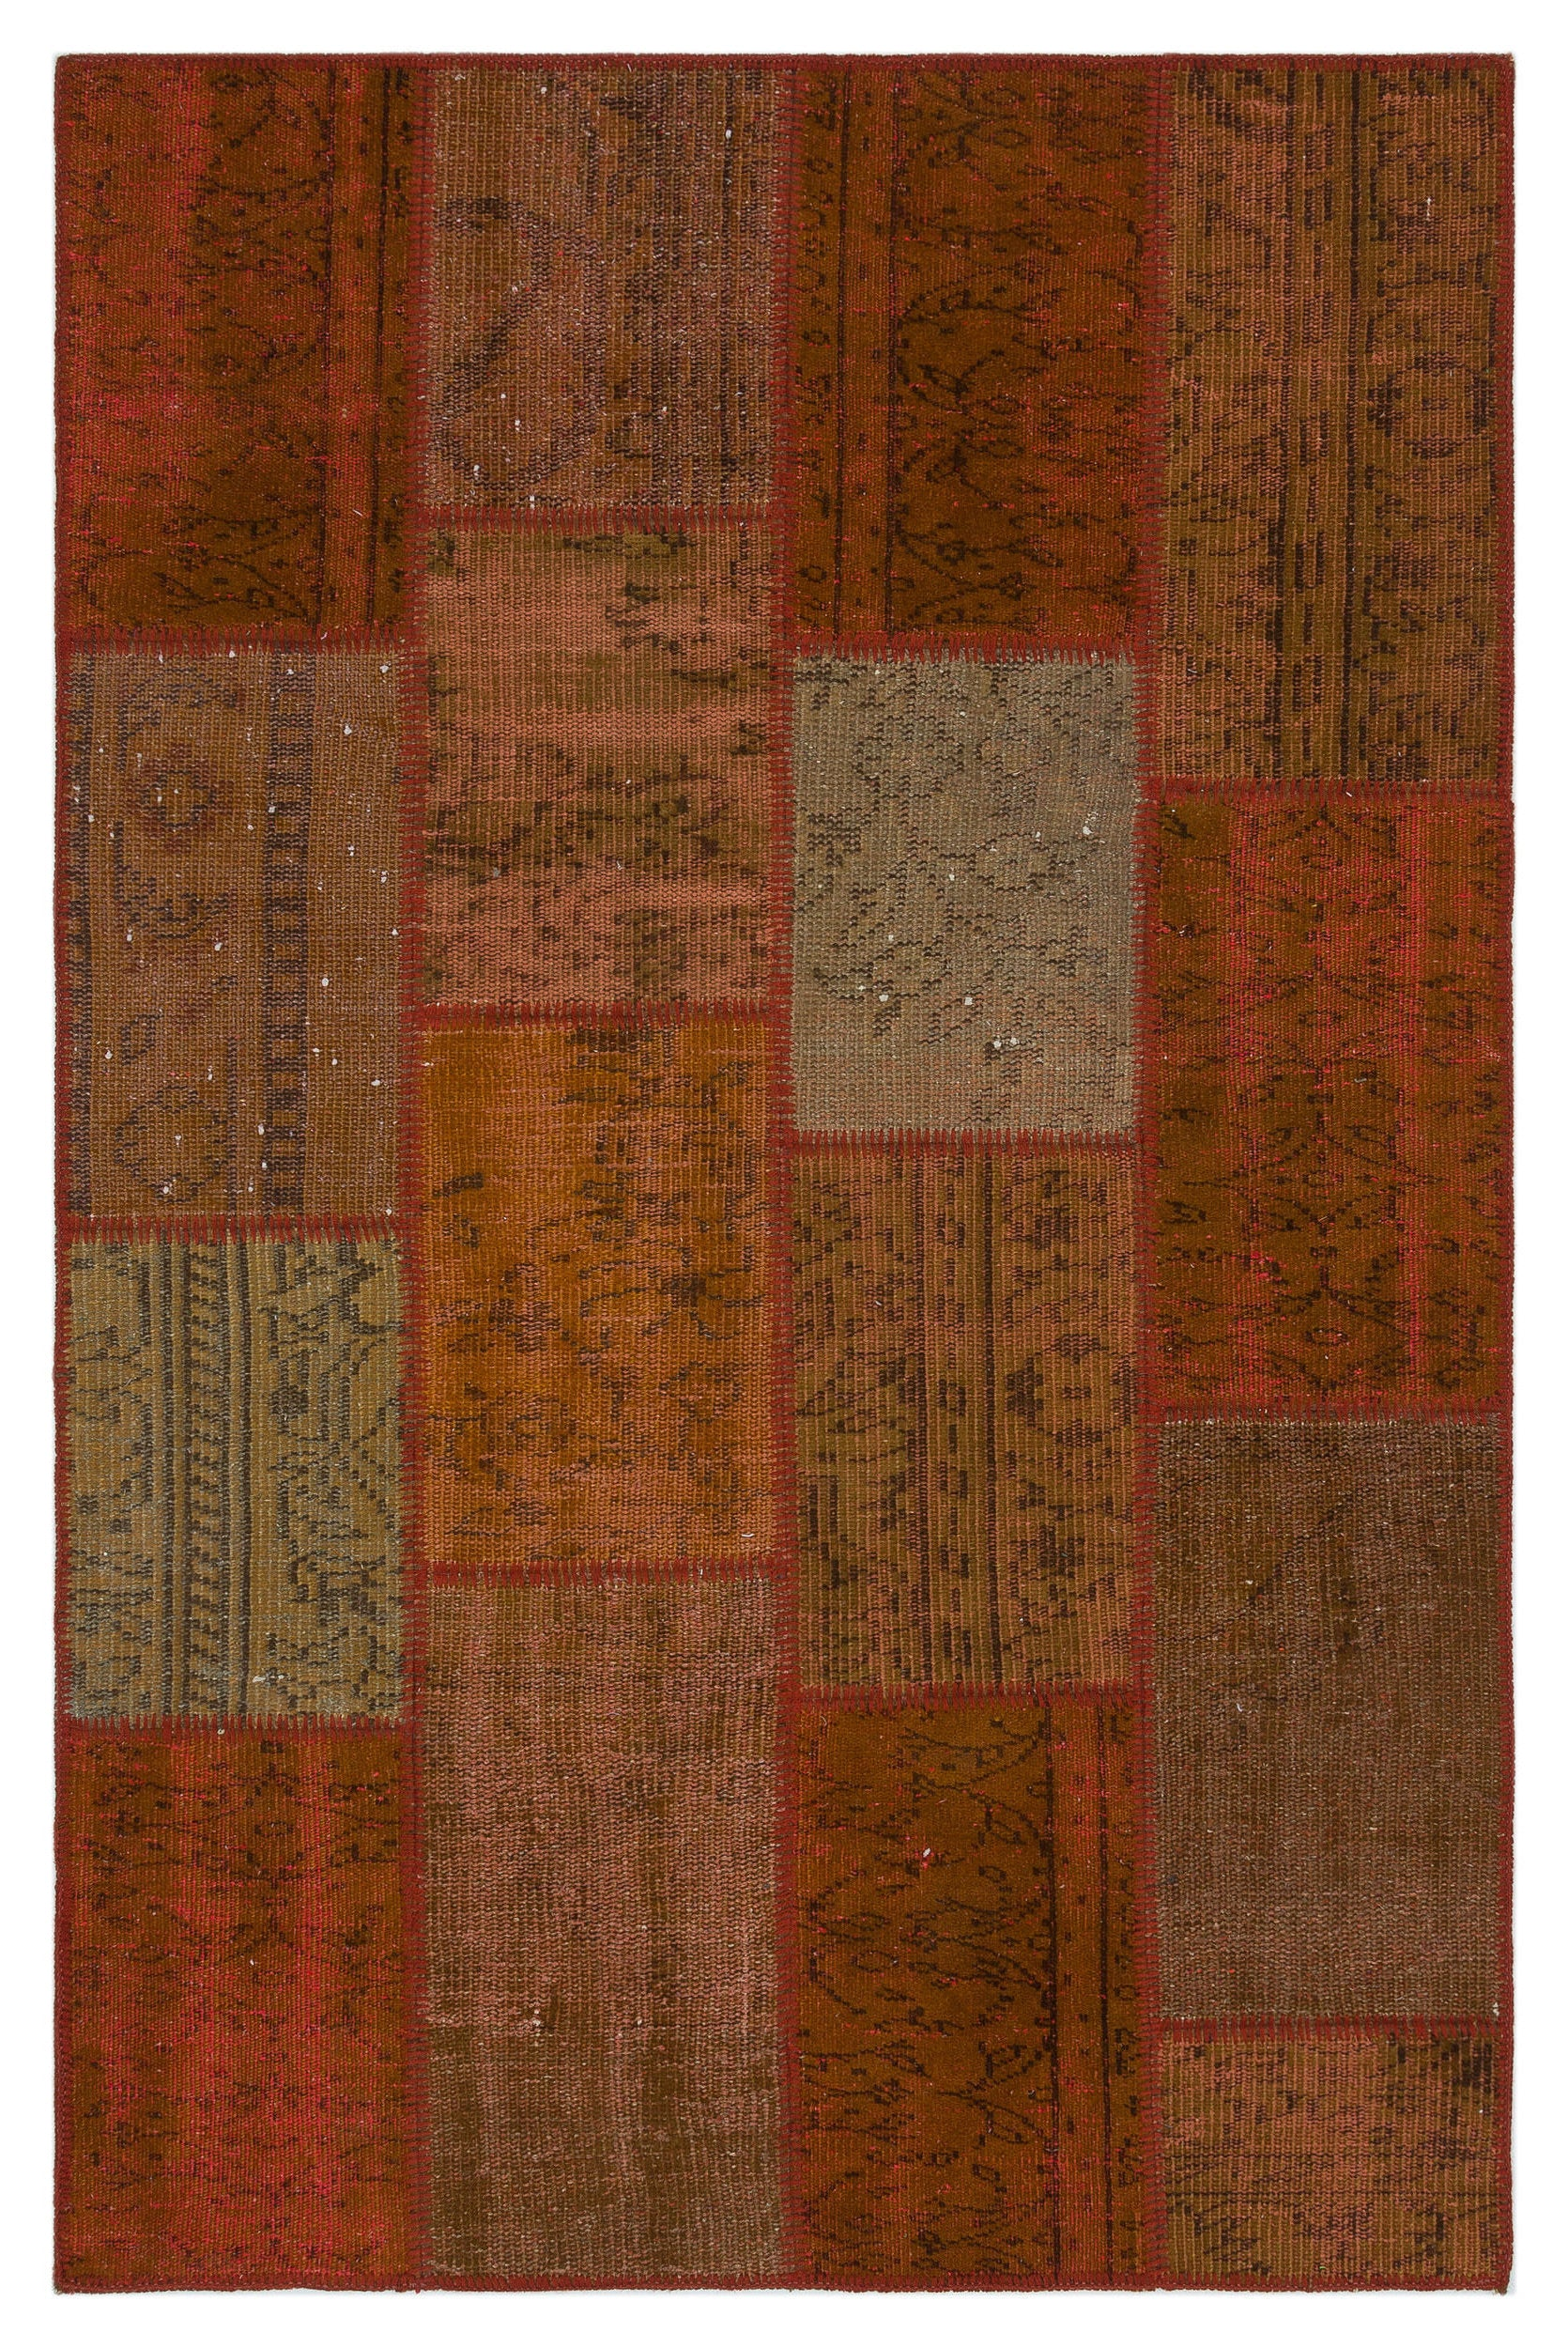 Brown Over Dyed Patchwork Unique Rug 3'11'' x 6'0'' ft 120 x 183 cm